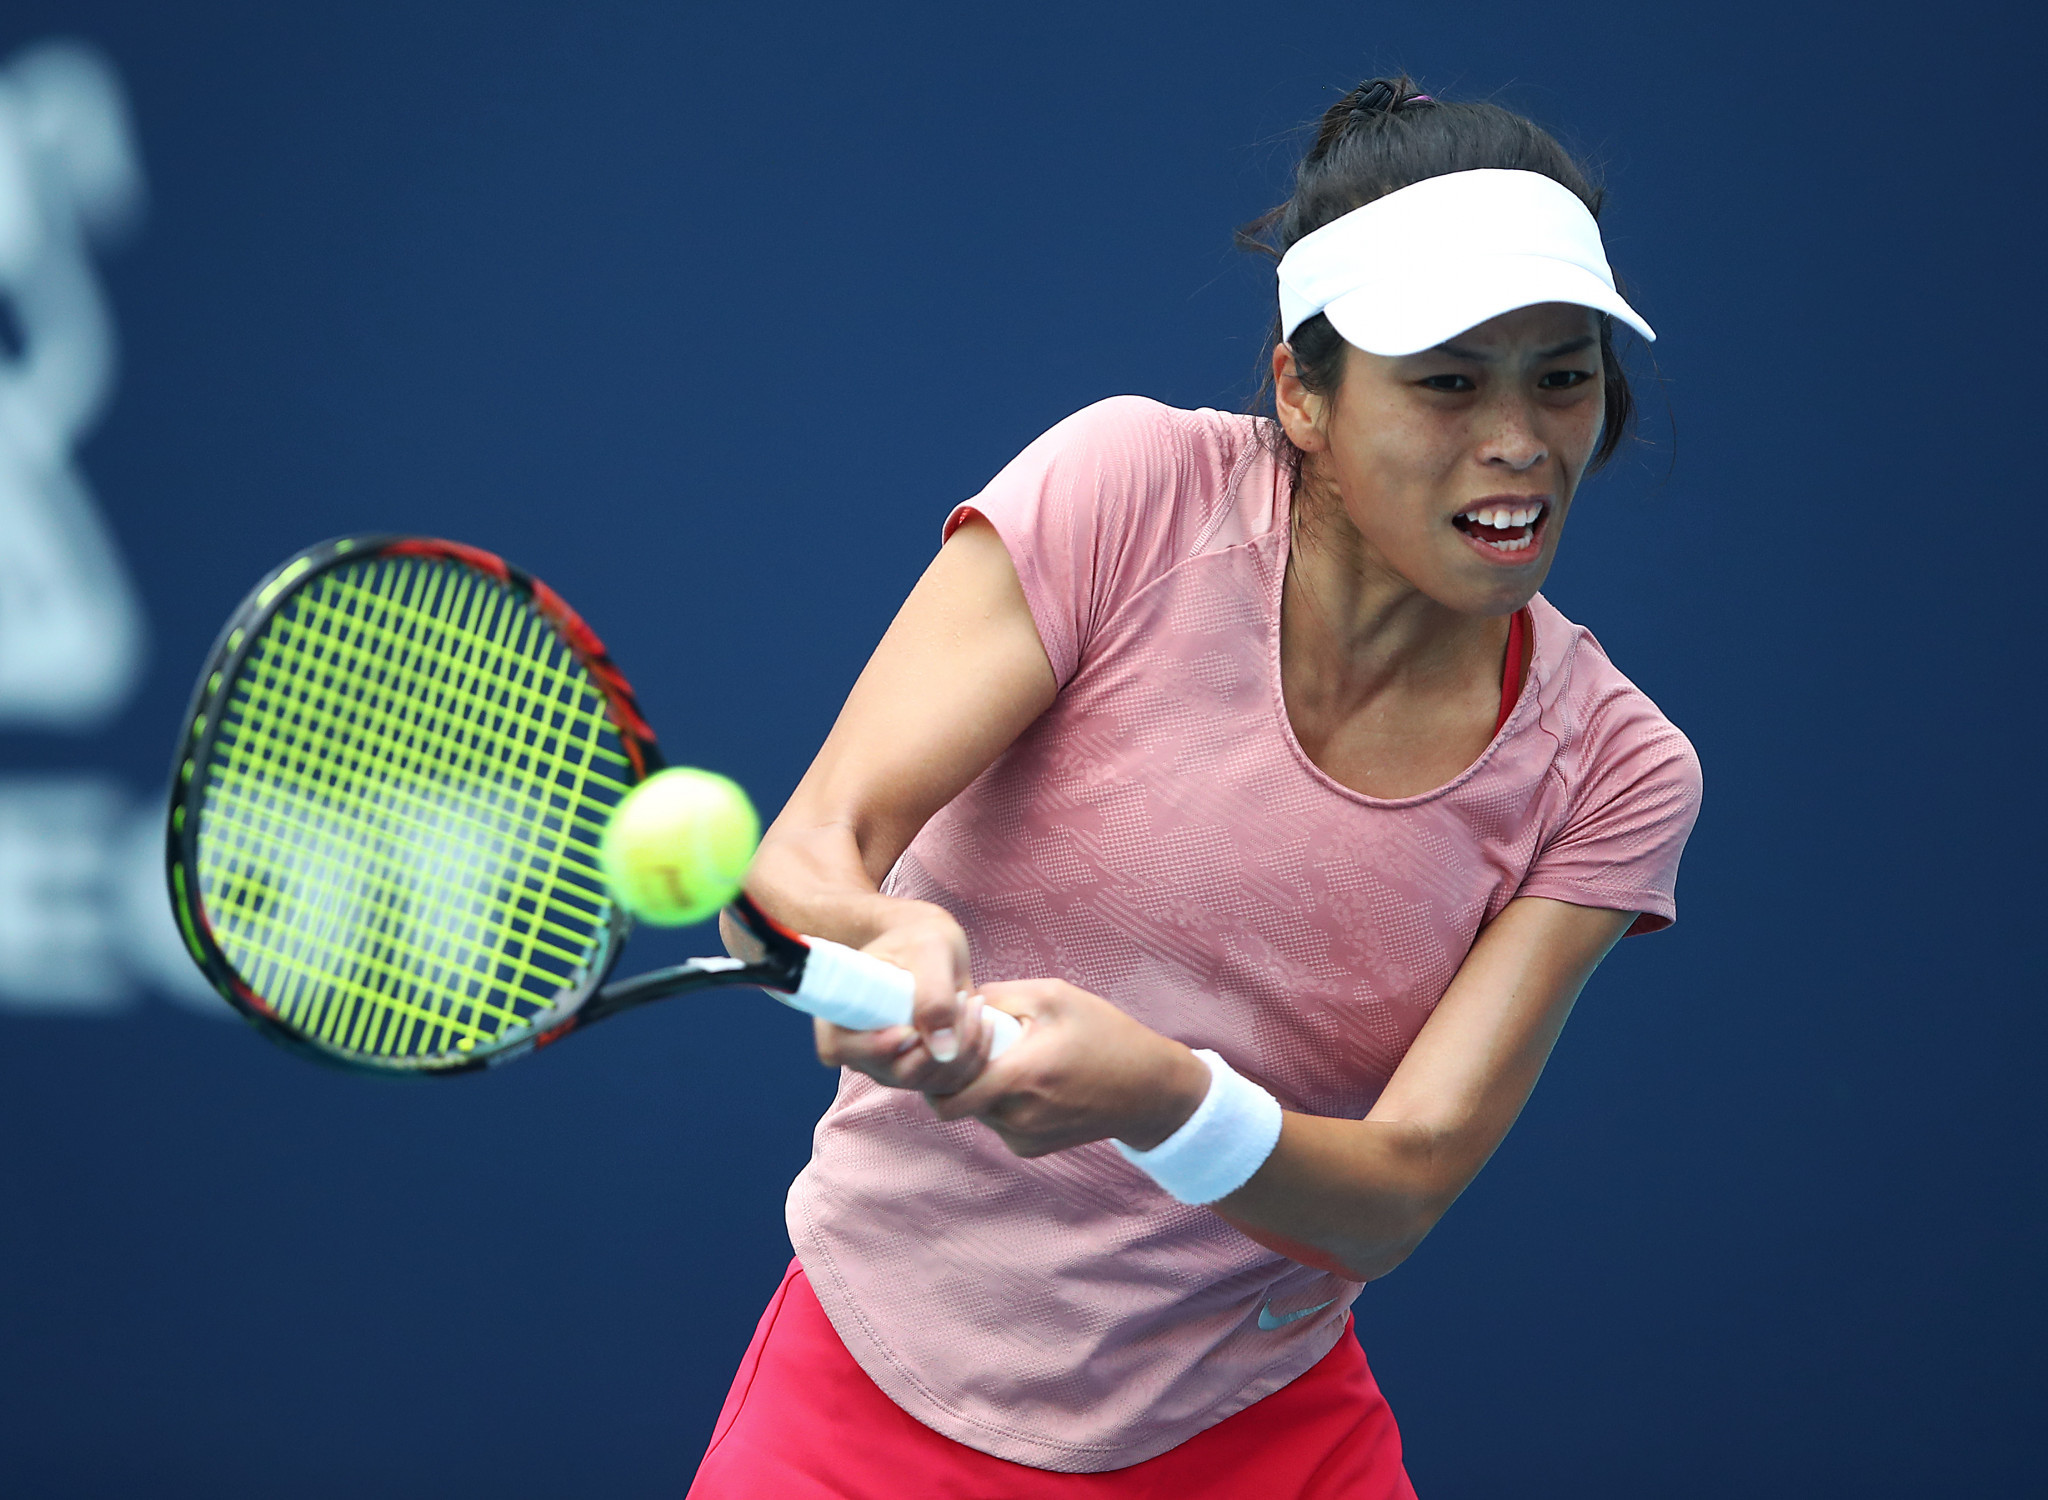 Hsieh wins at Stuttgart Open to set up second-round meeting with top seed Osaka